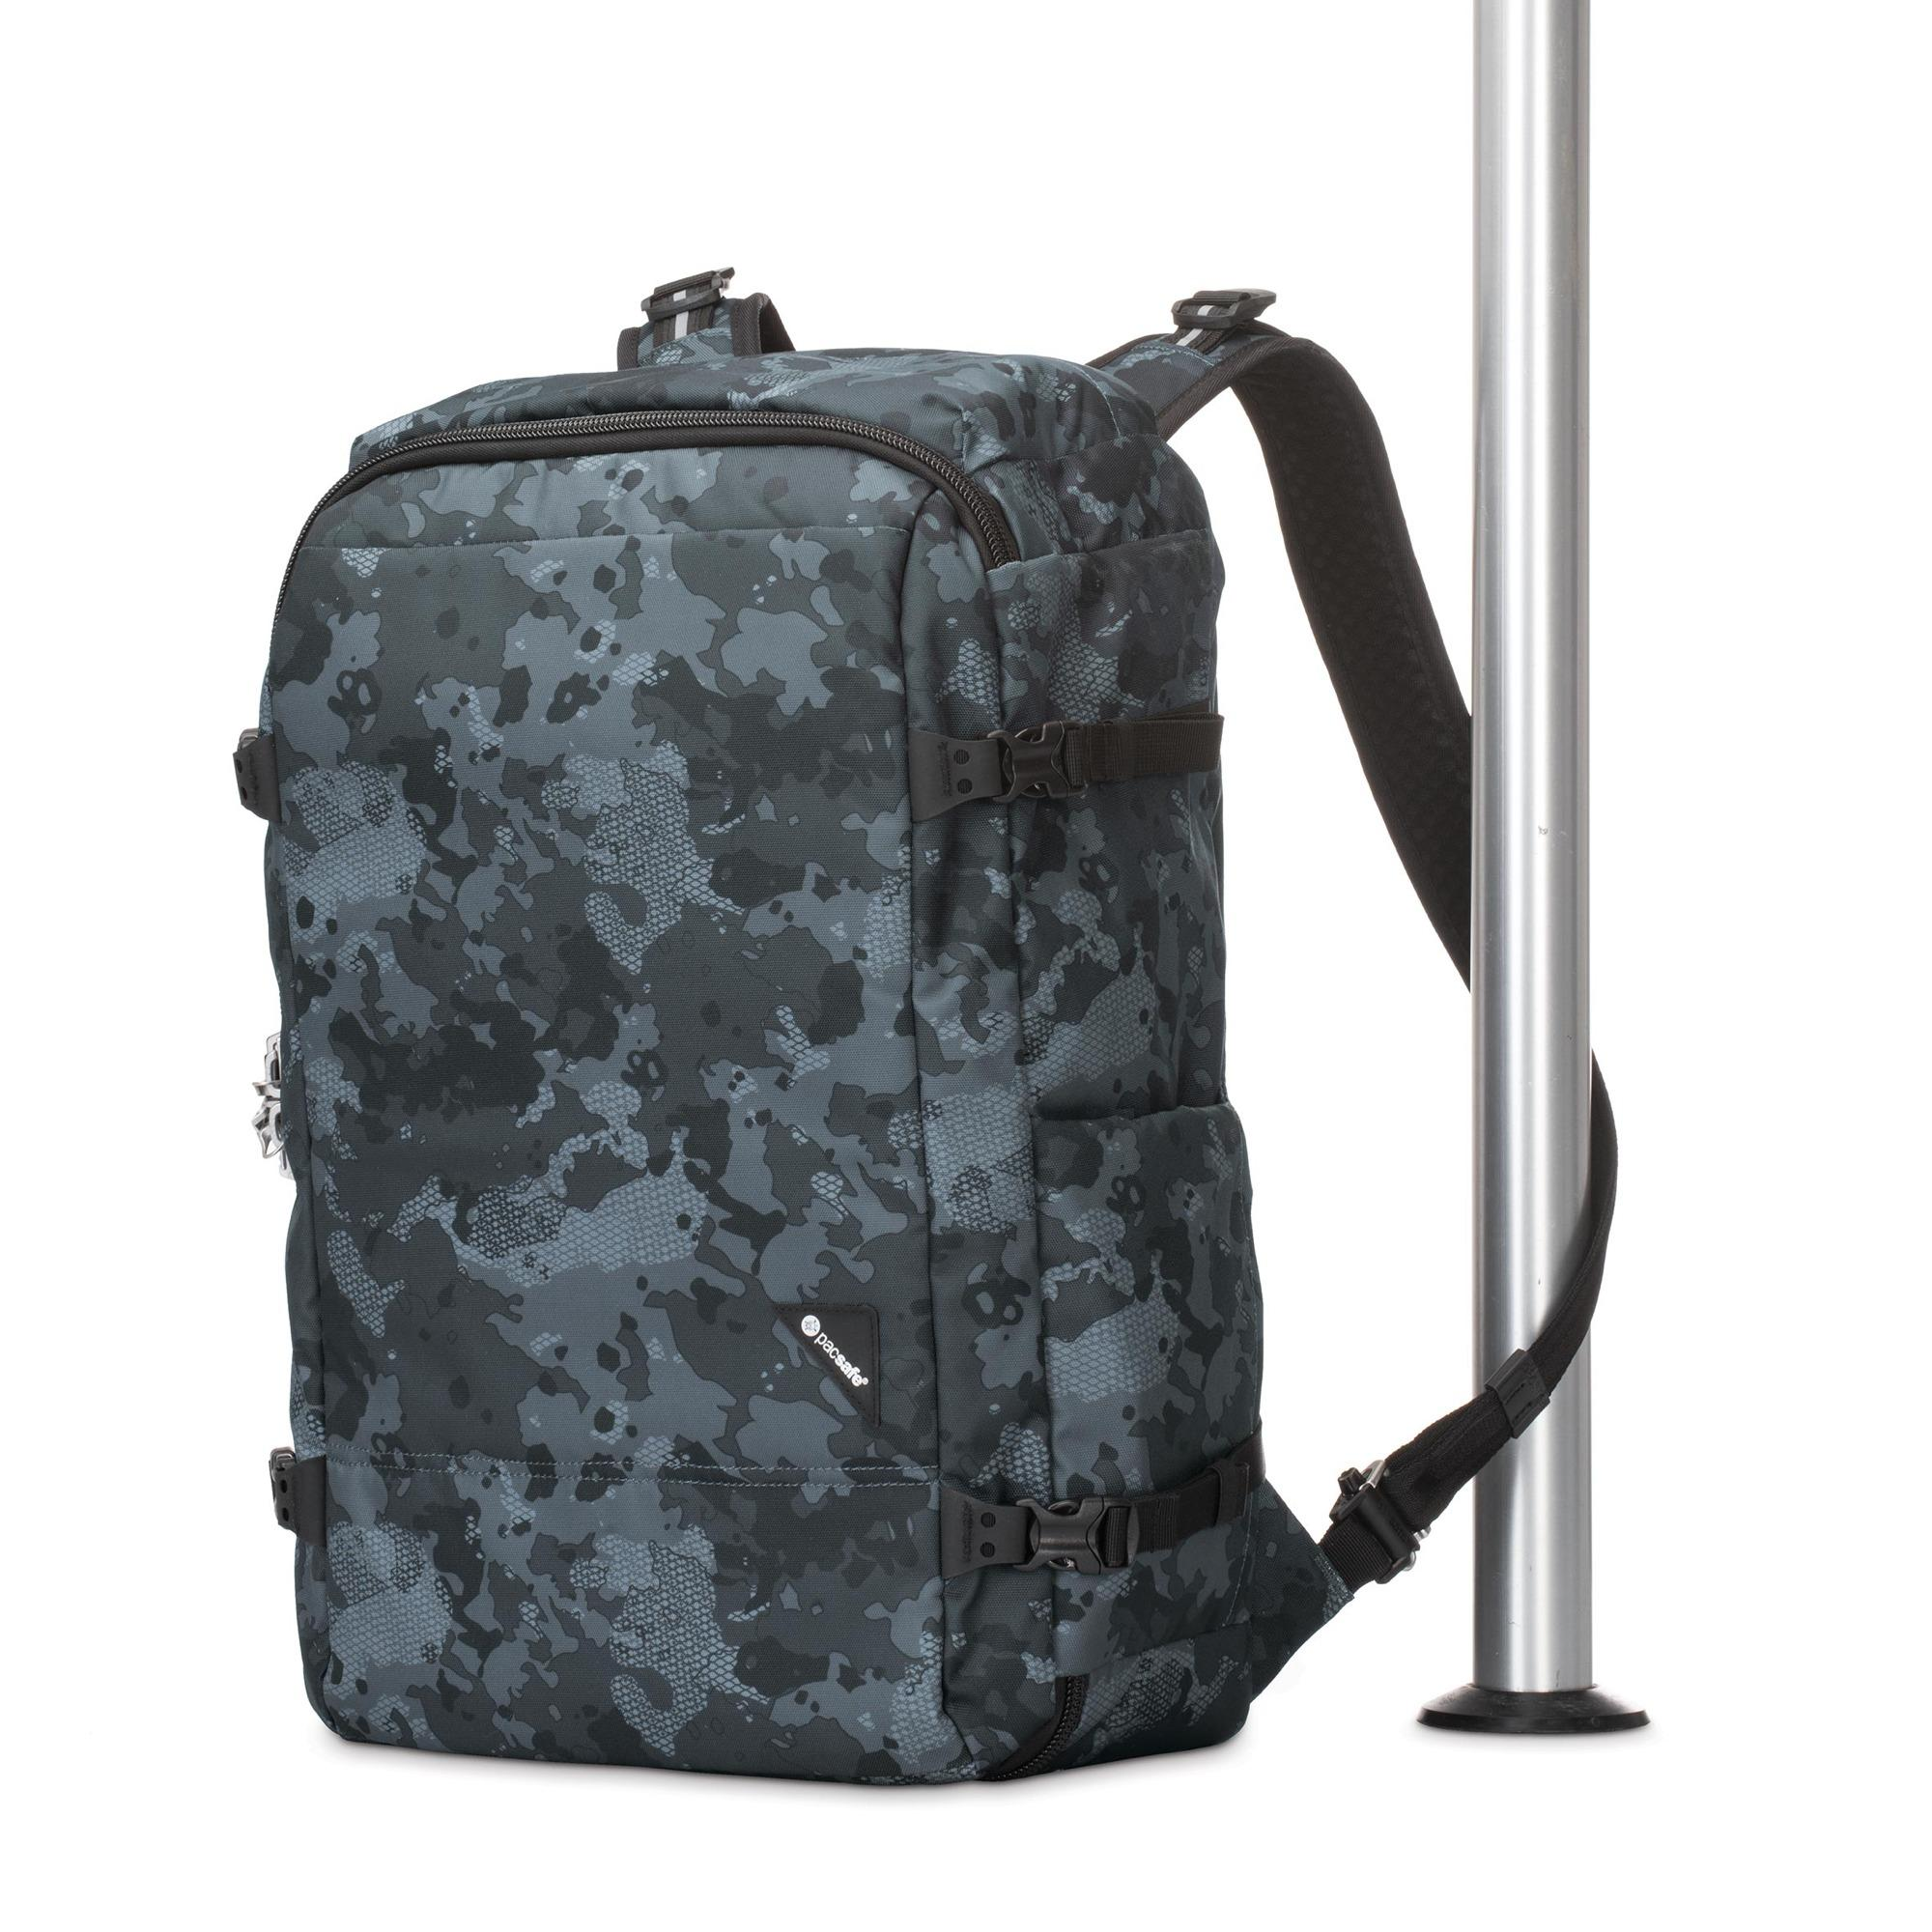 fd2ca4fe3 Amazon.com: Pacsafe Vibe 40 Liter Anti Theft Carry-On Backpack ...